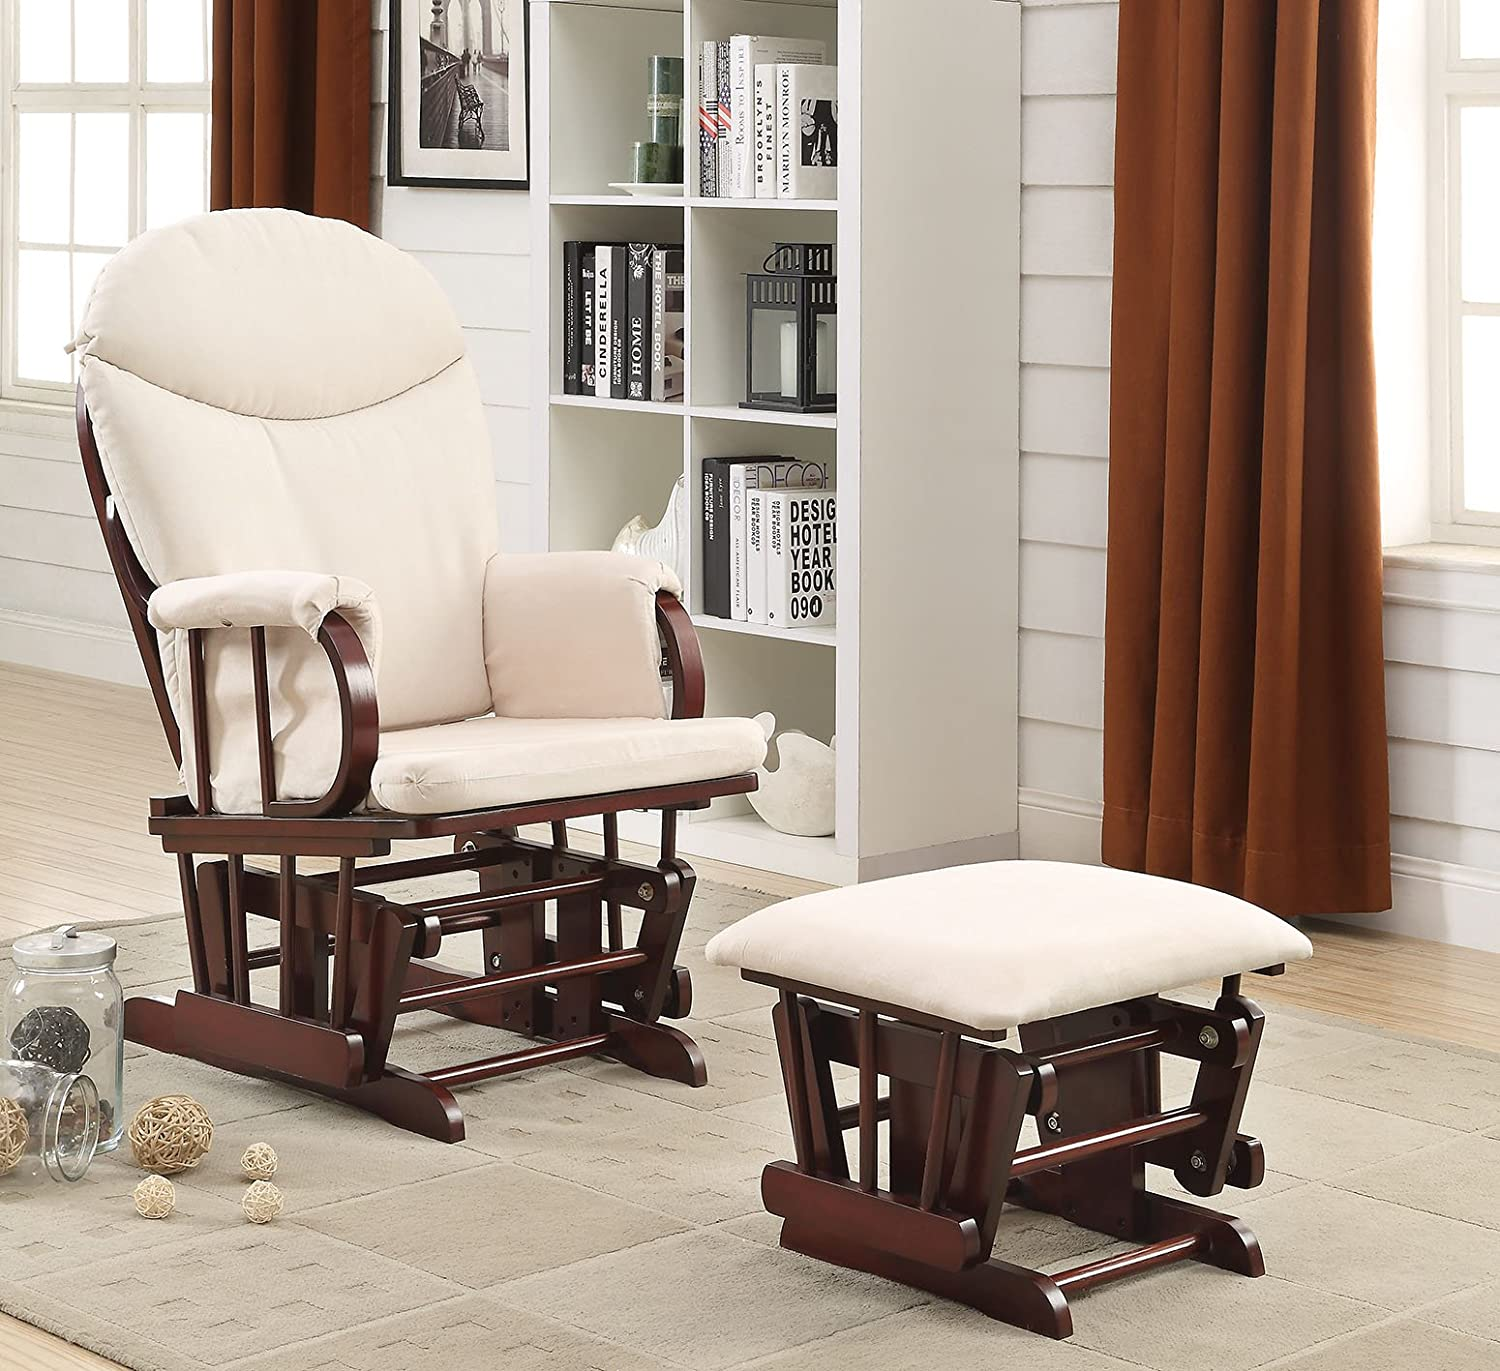 Acme Furniture 59330 2 Piece Raul Glider Chair & Ottoman, Beige & Cherry